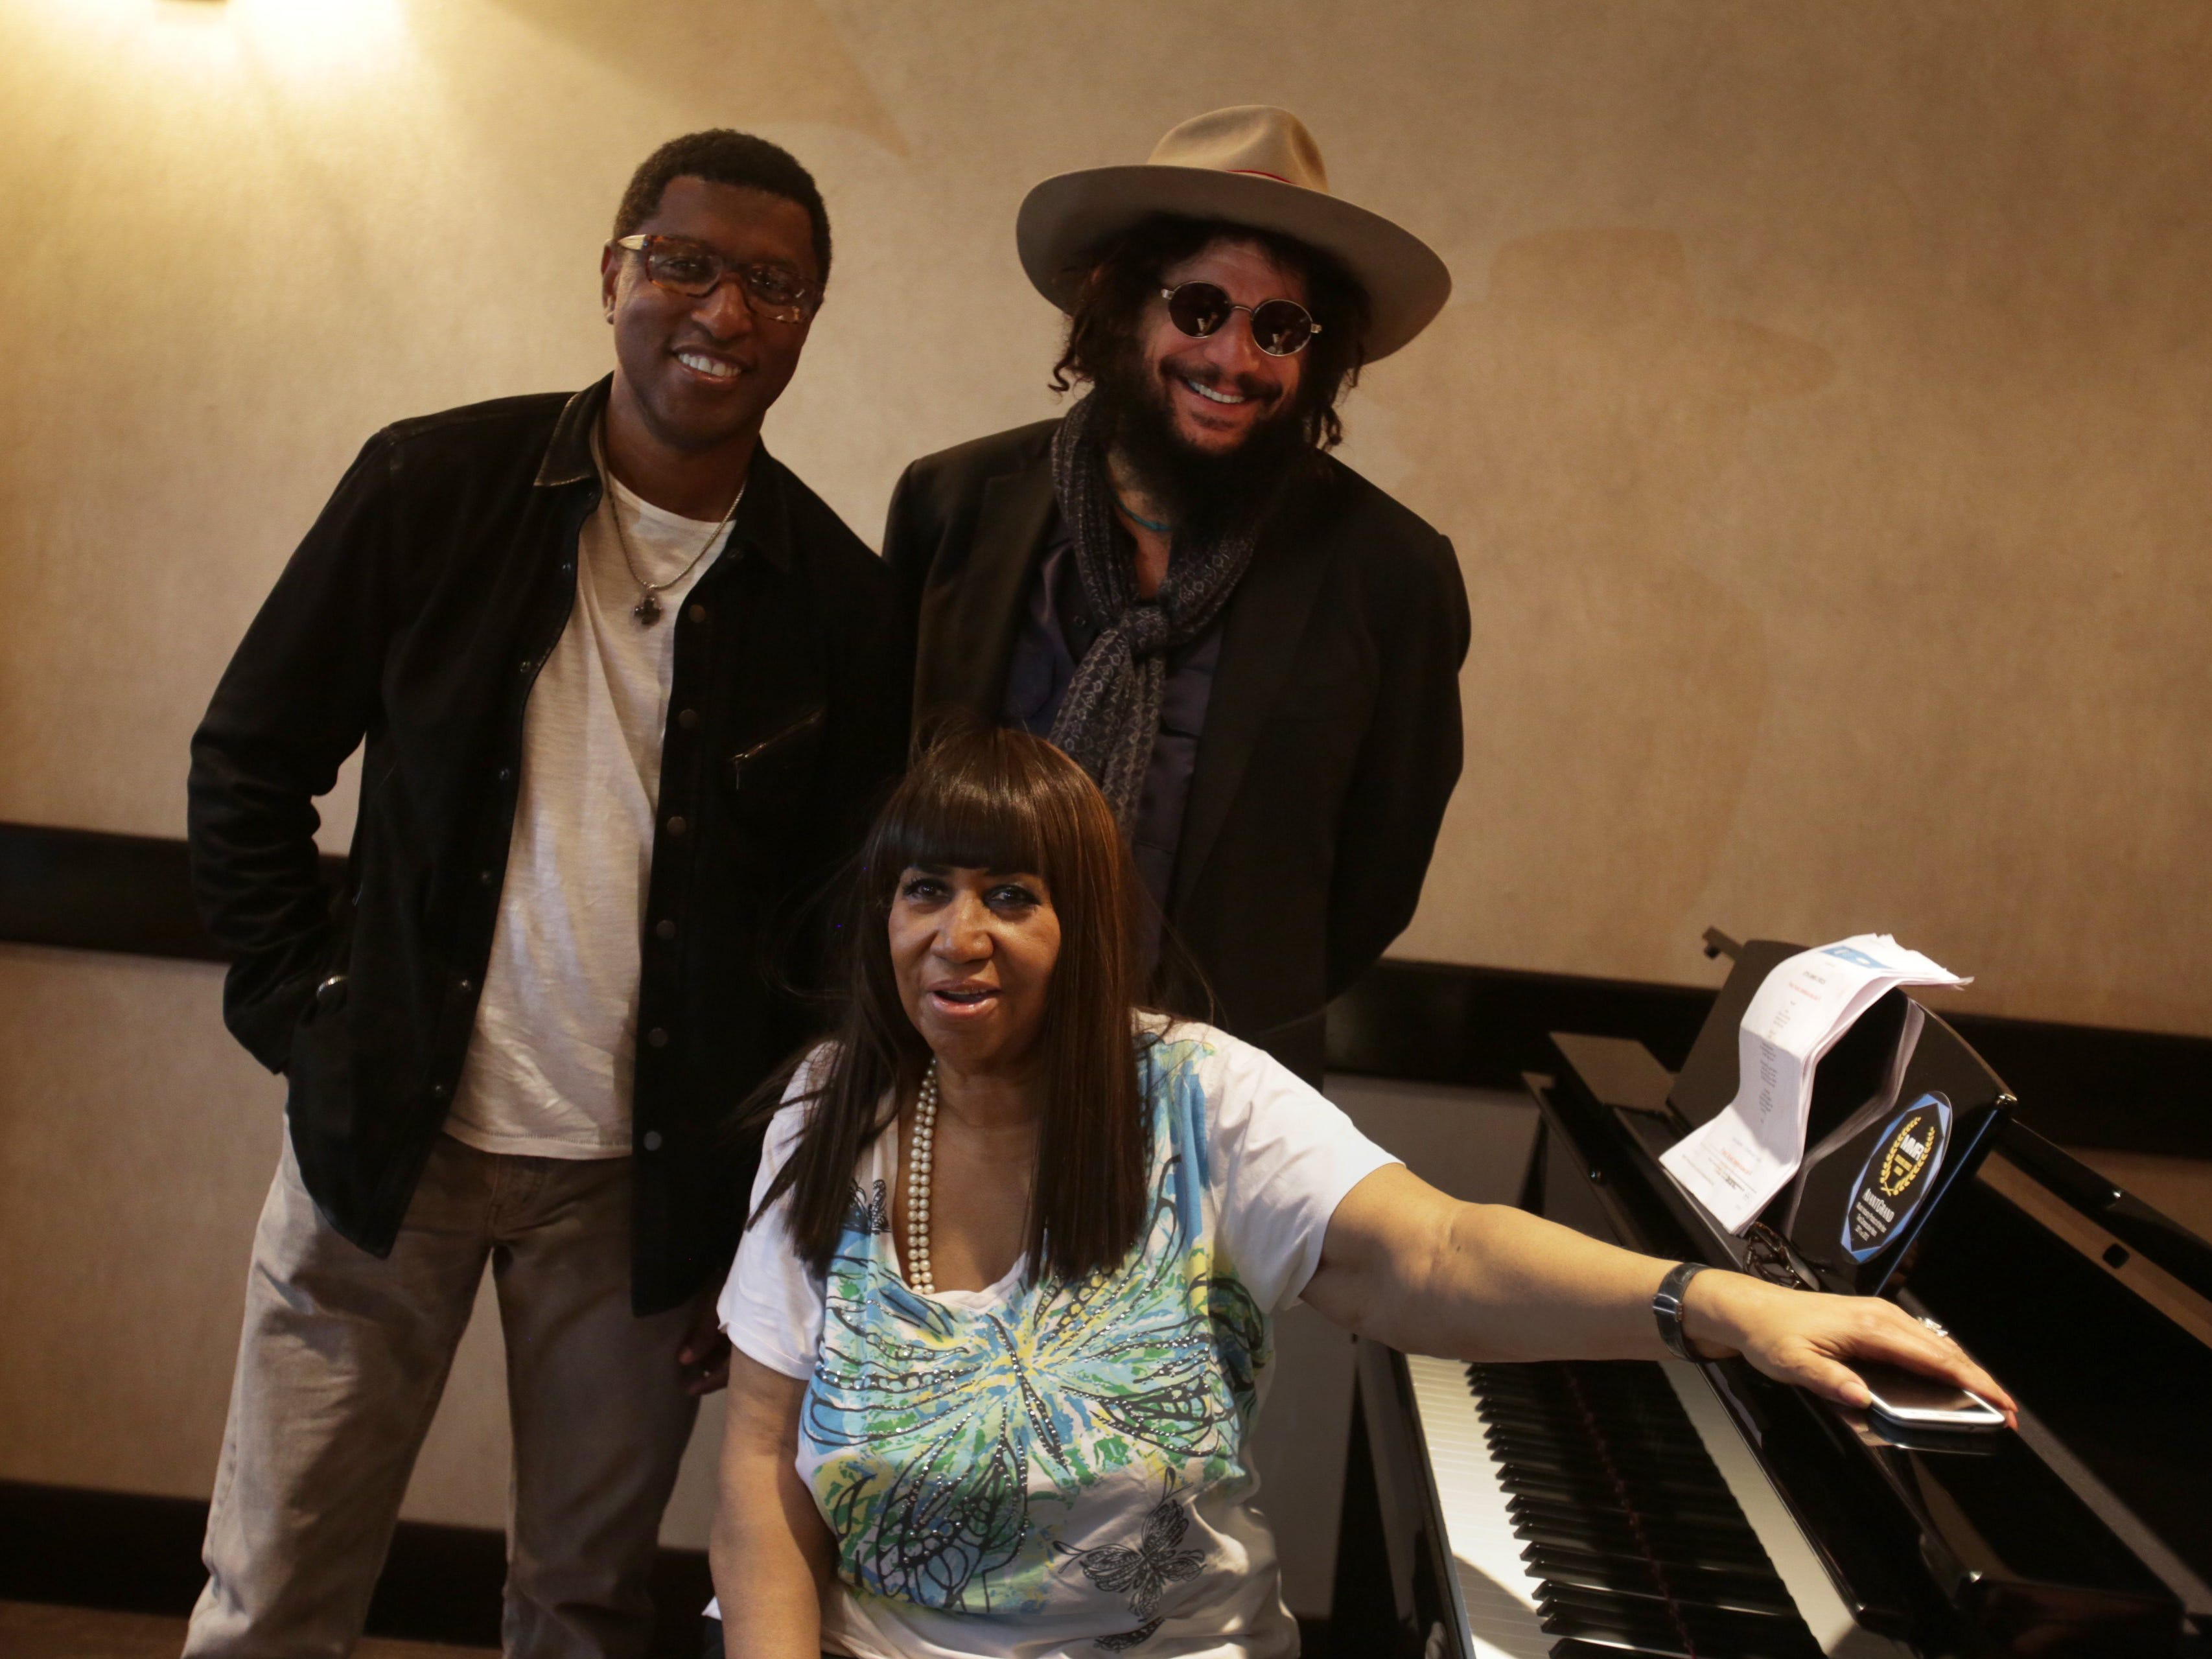 Aretha Franklin poses for a photograph with veteran producer Don Was, right and longtime friend and producer Kenny (Babyface) Edmonds during their first pre production meeting for her upcoming album at the Westin hotel in Southfield, MI on Thursday October 17, 2013.